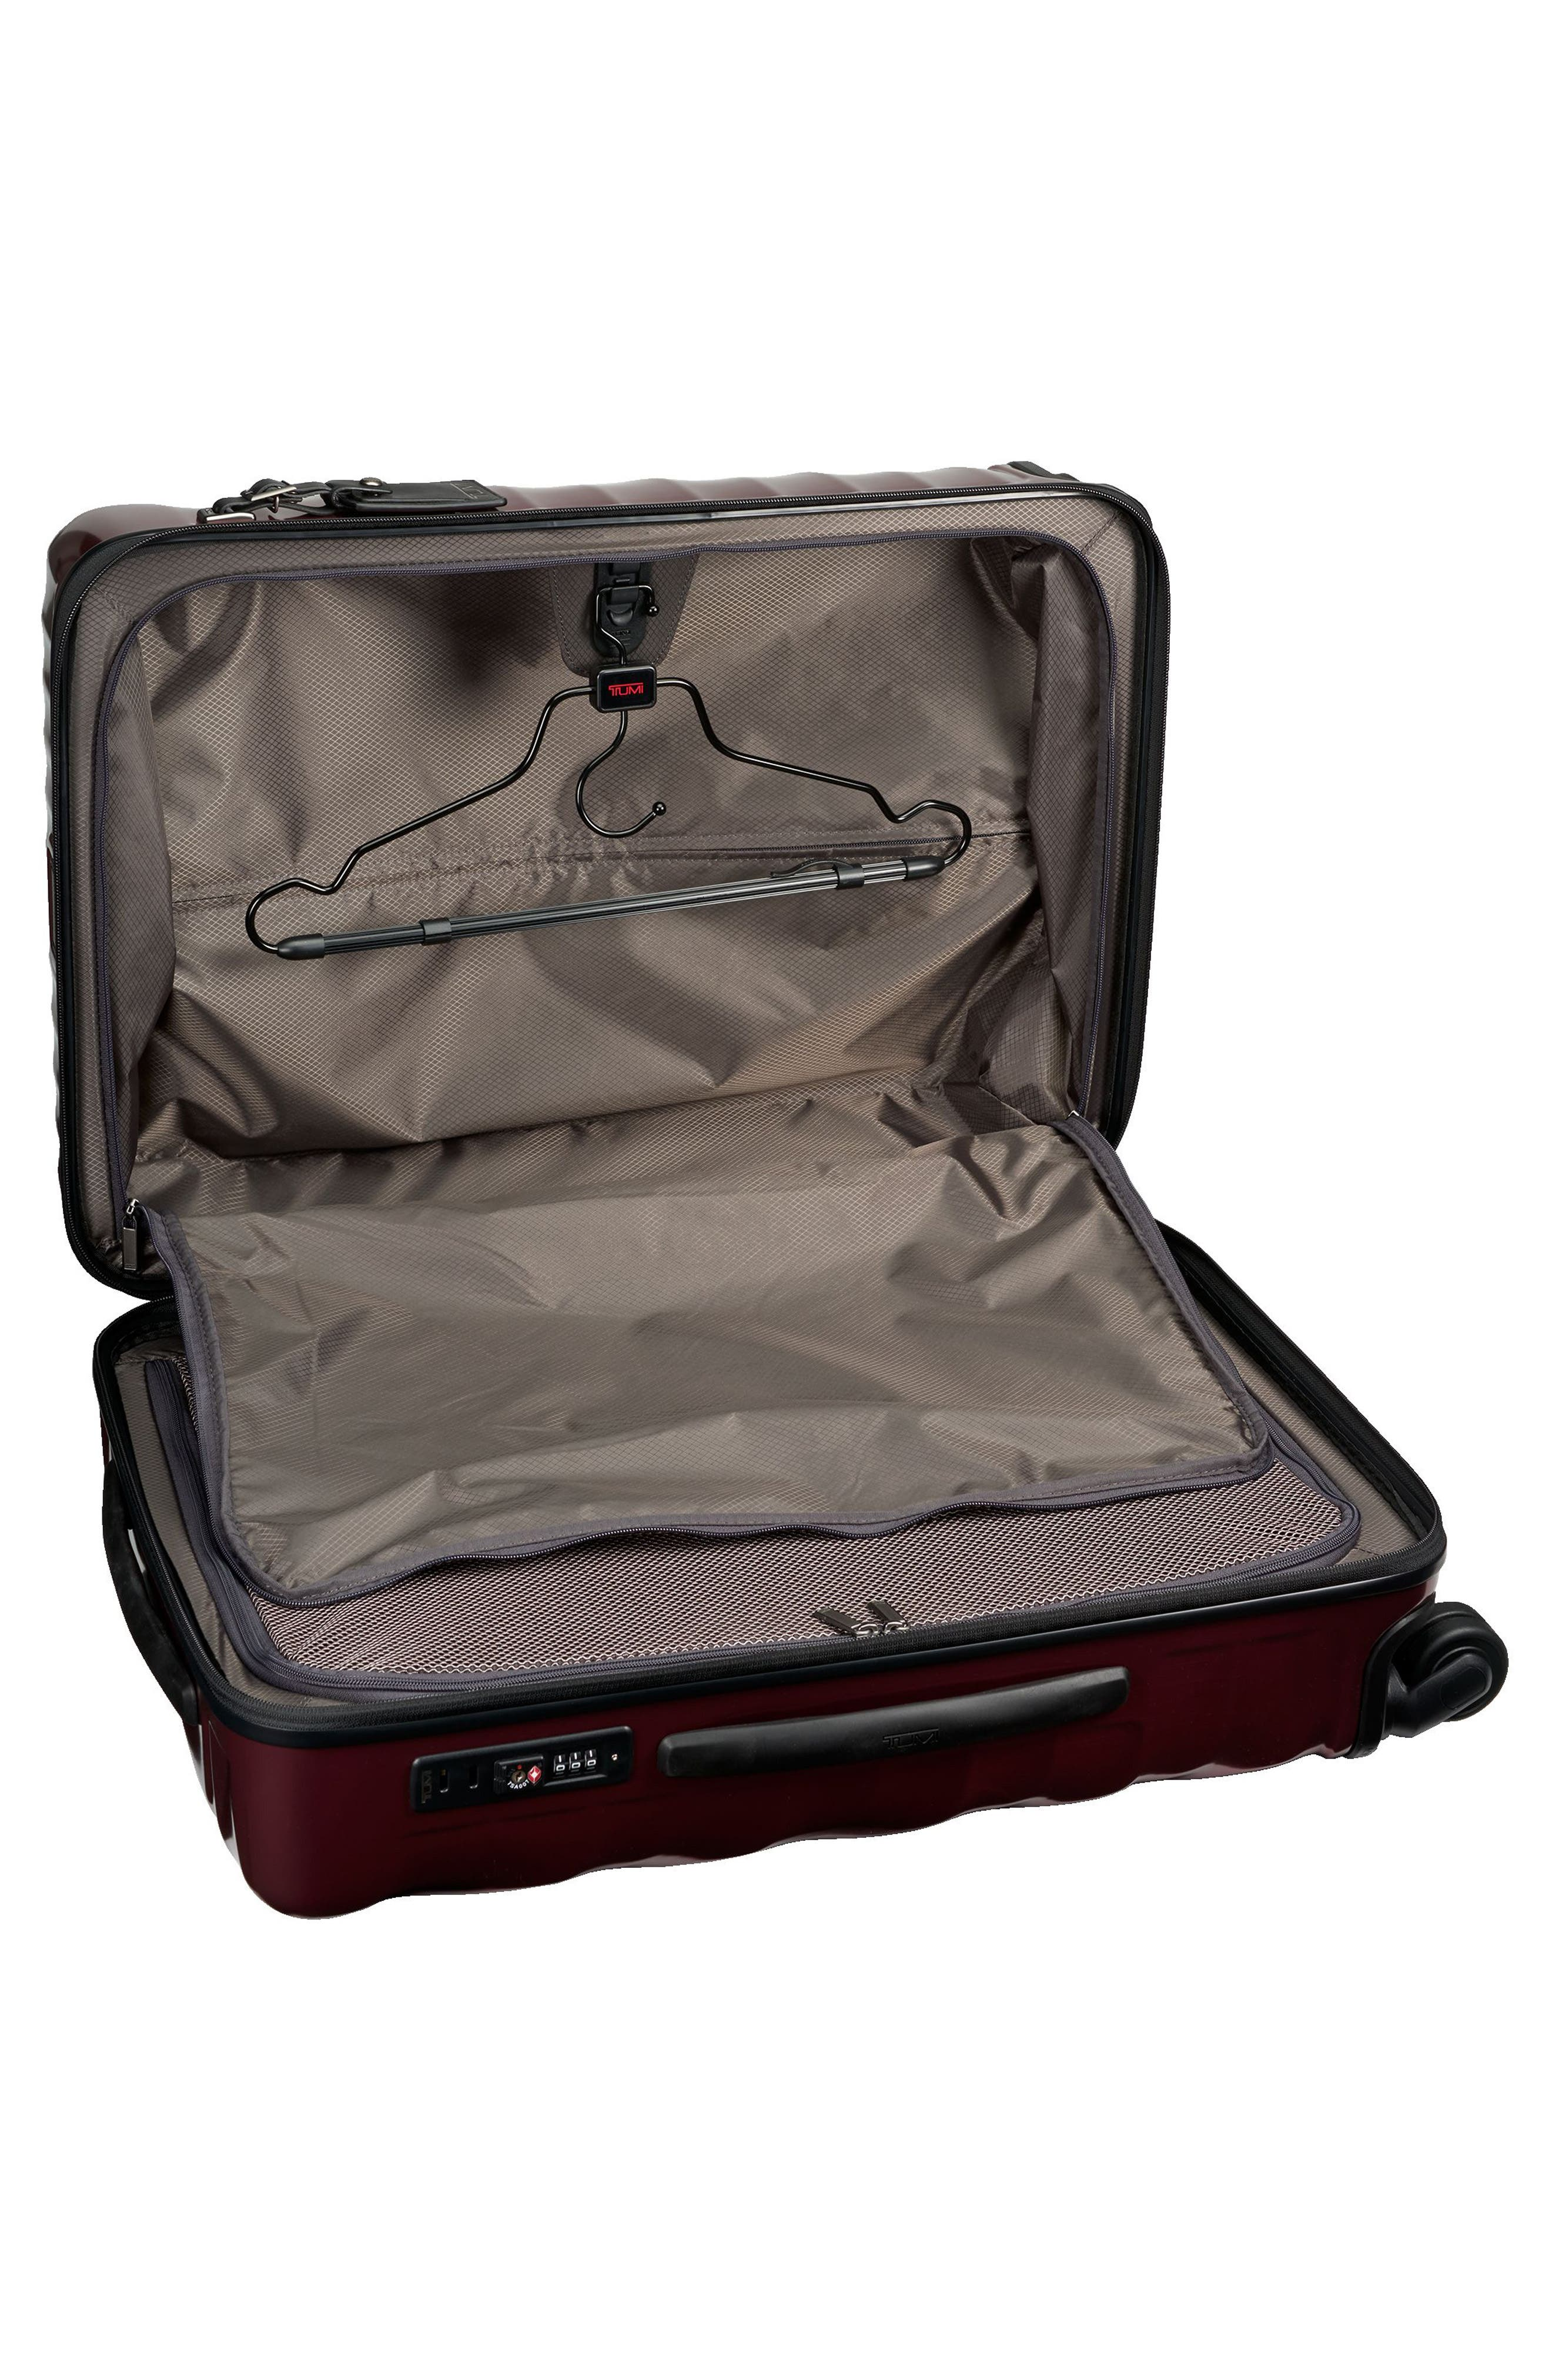 19 Degree 26 Inch Short Trip Packing Case,                             Alternate thumbnail 2, color,                             603